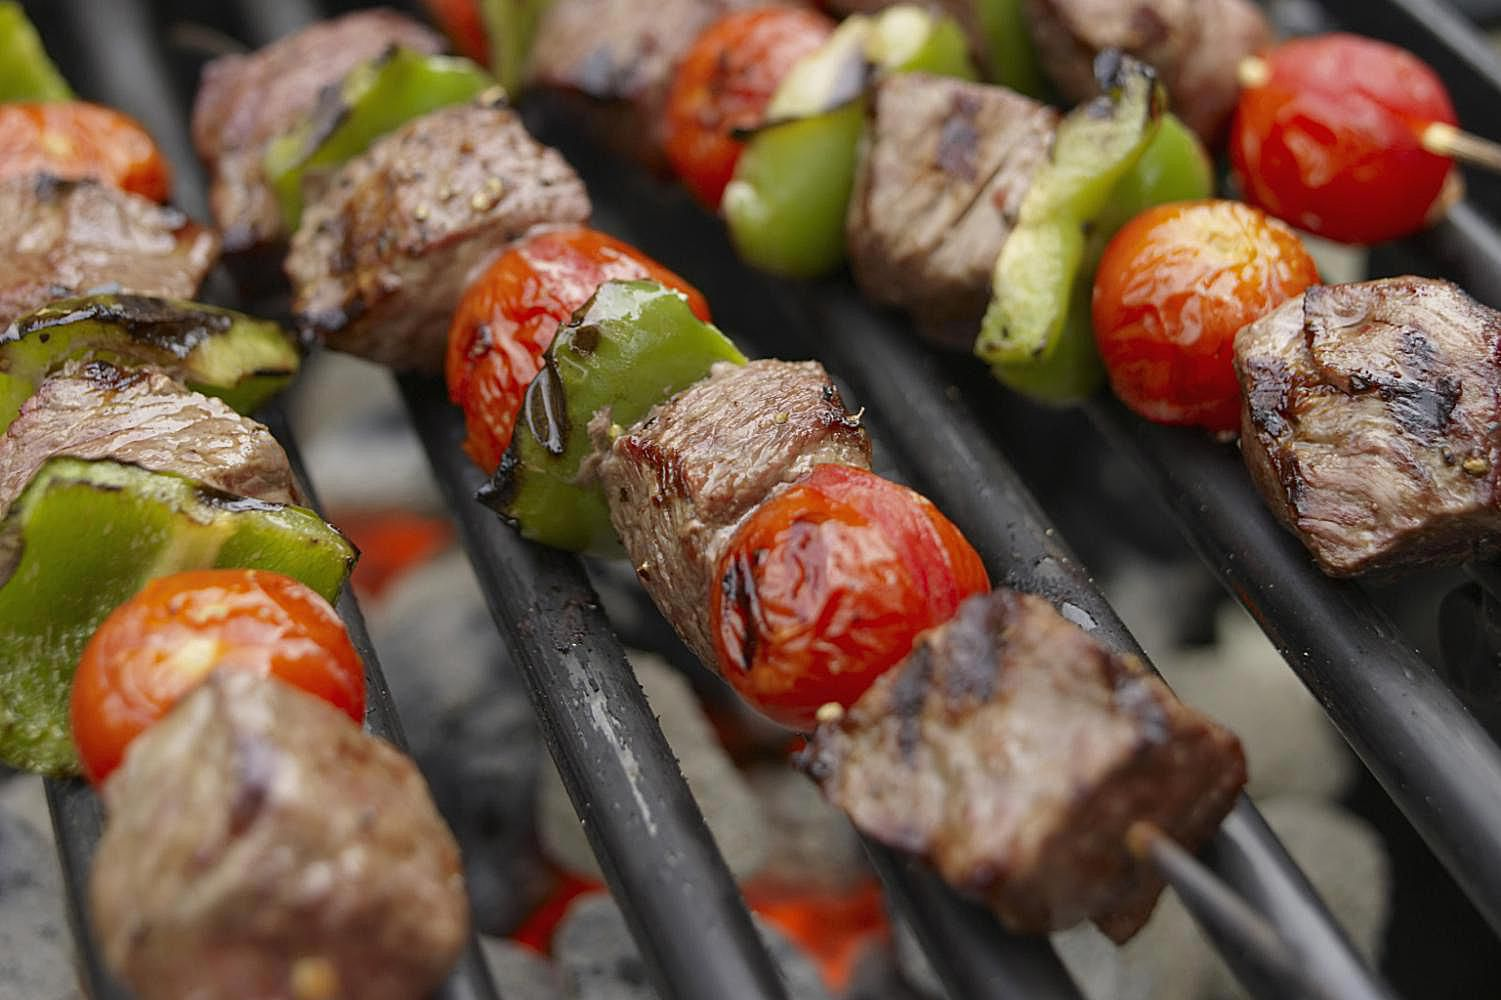 The Tastiest Kebab Recipes From Around the World